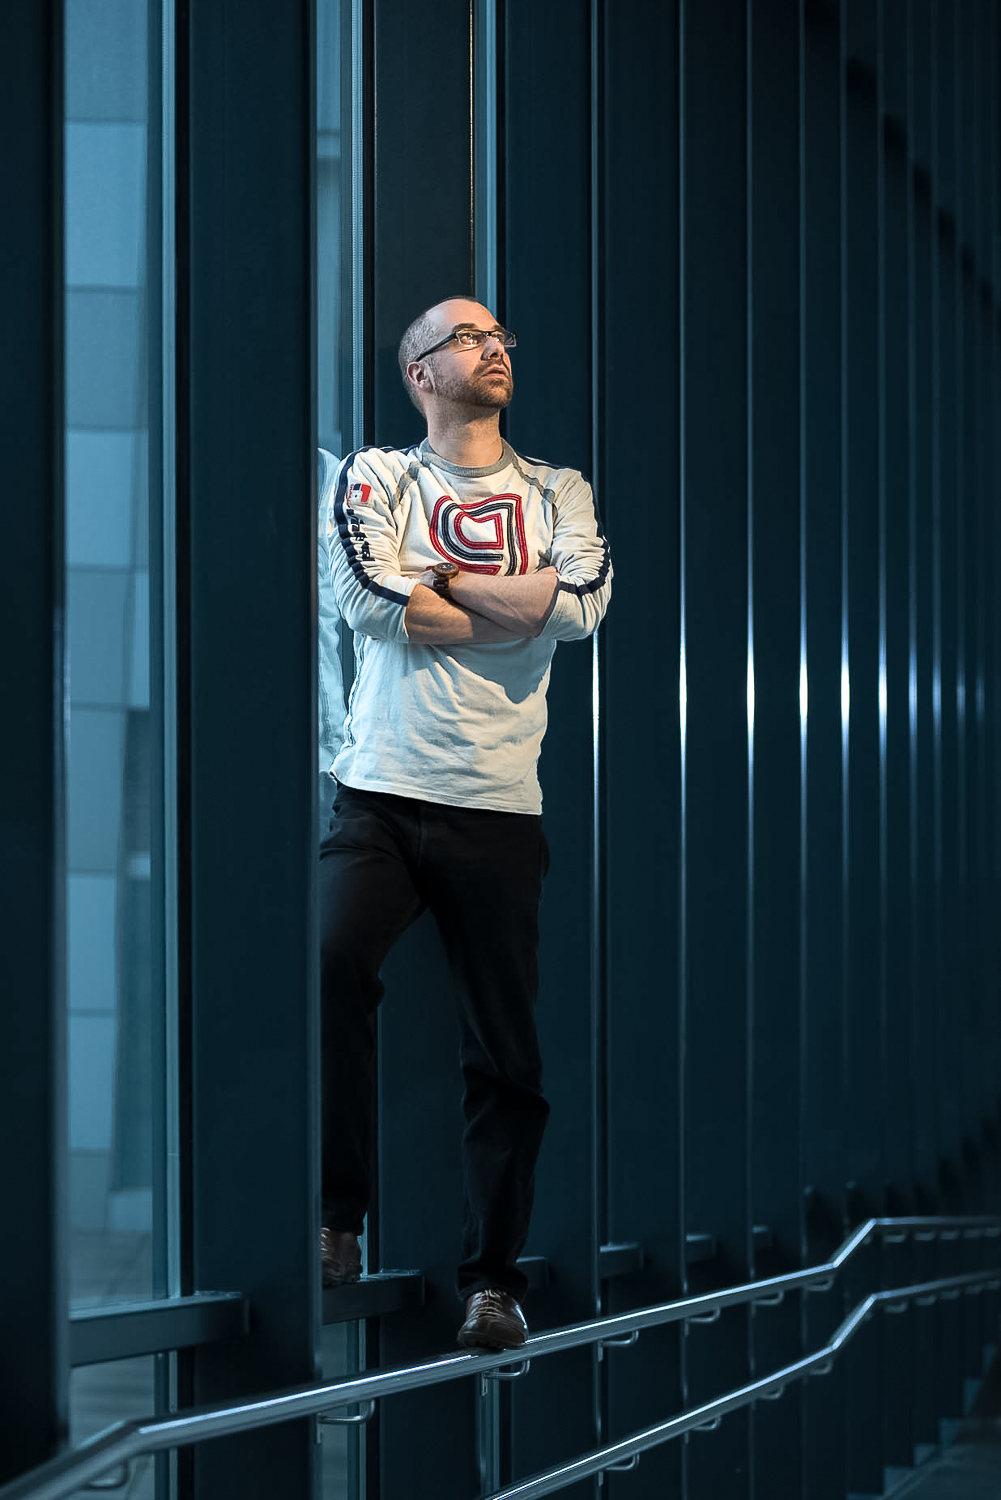 workshop-tejada-312.jpg